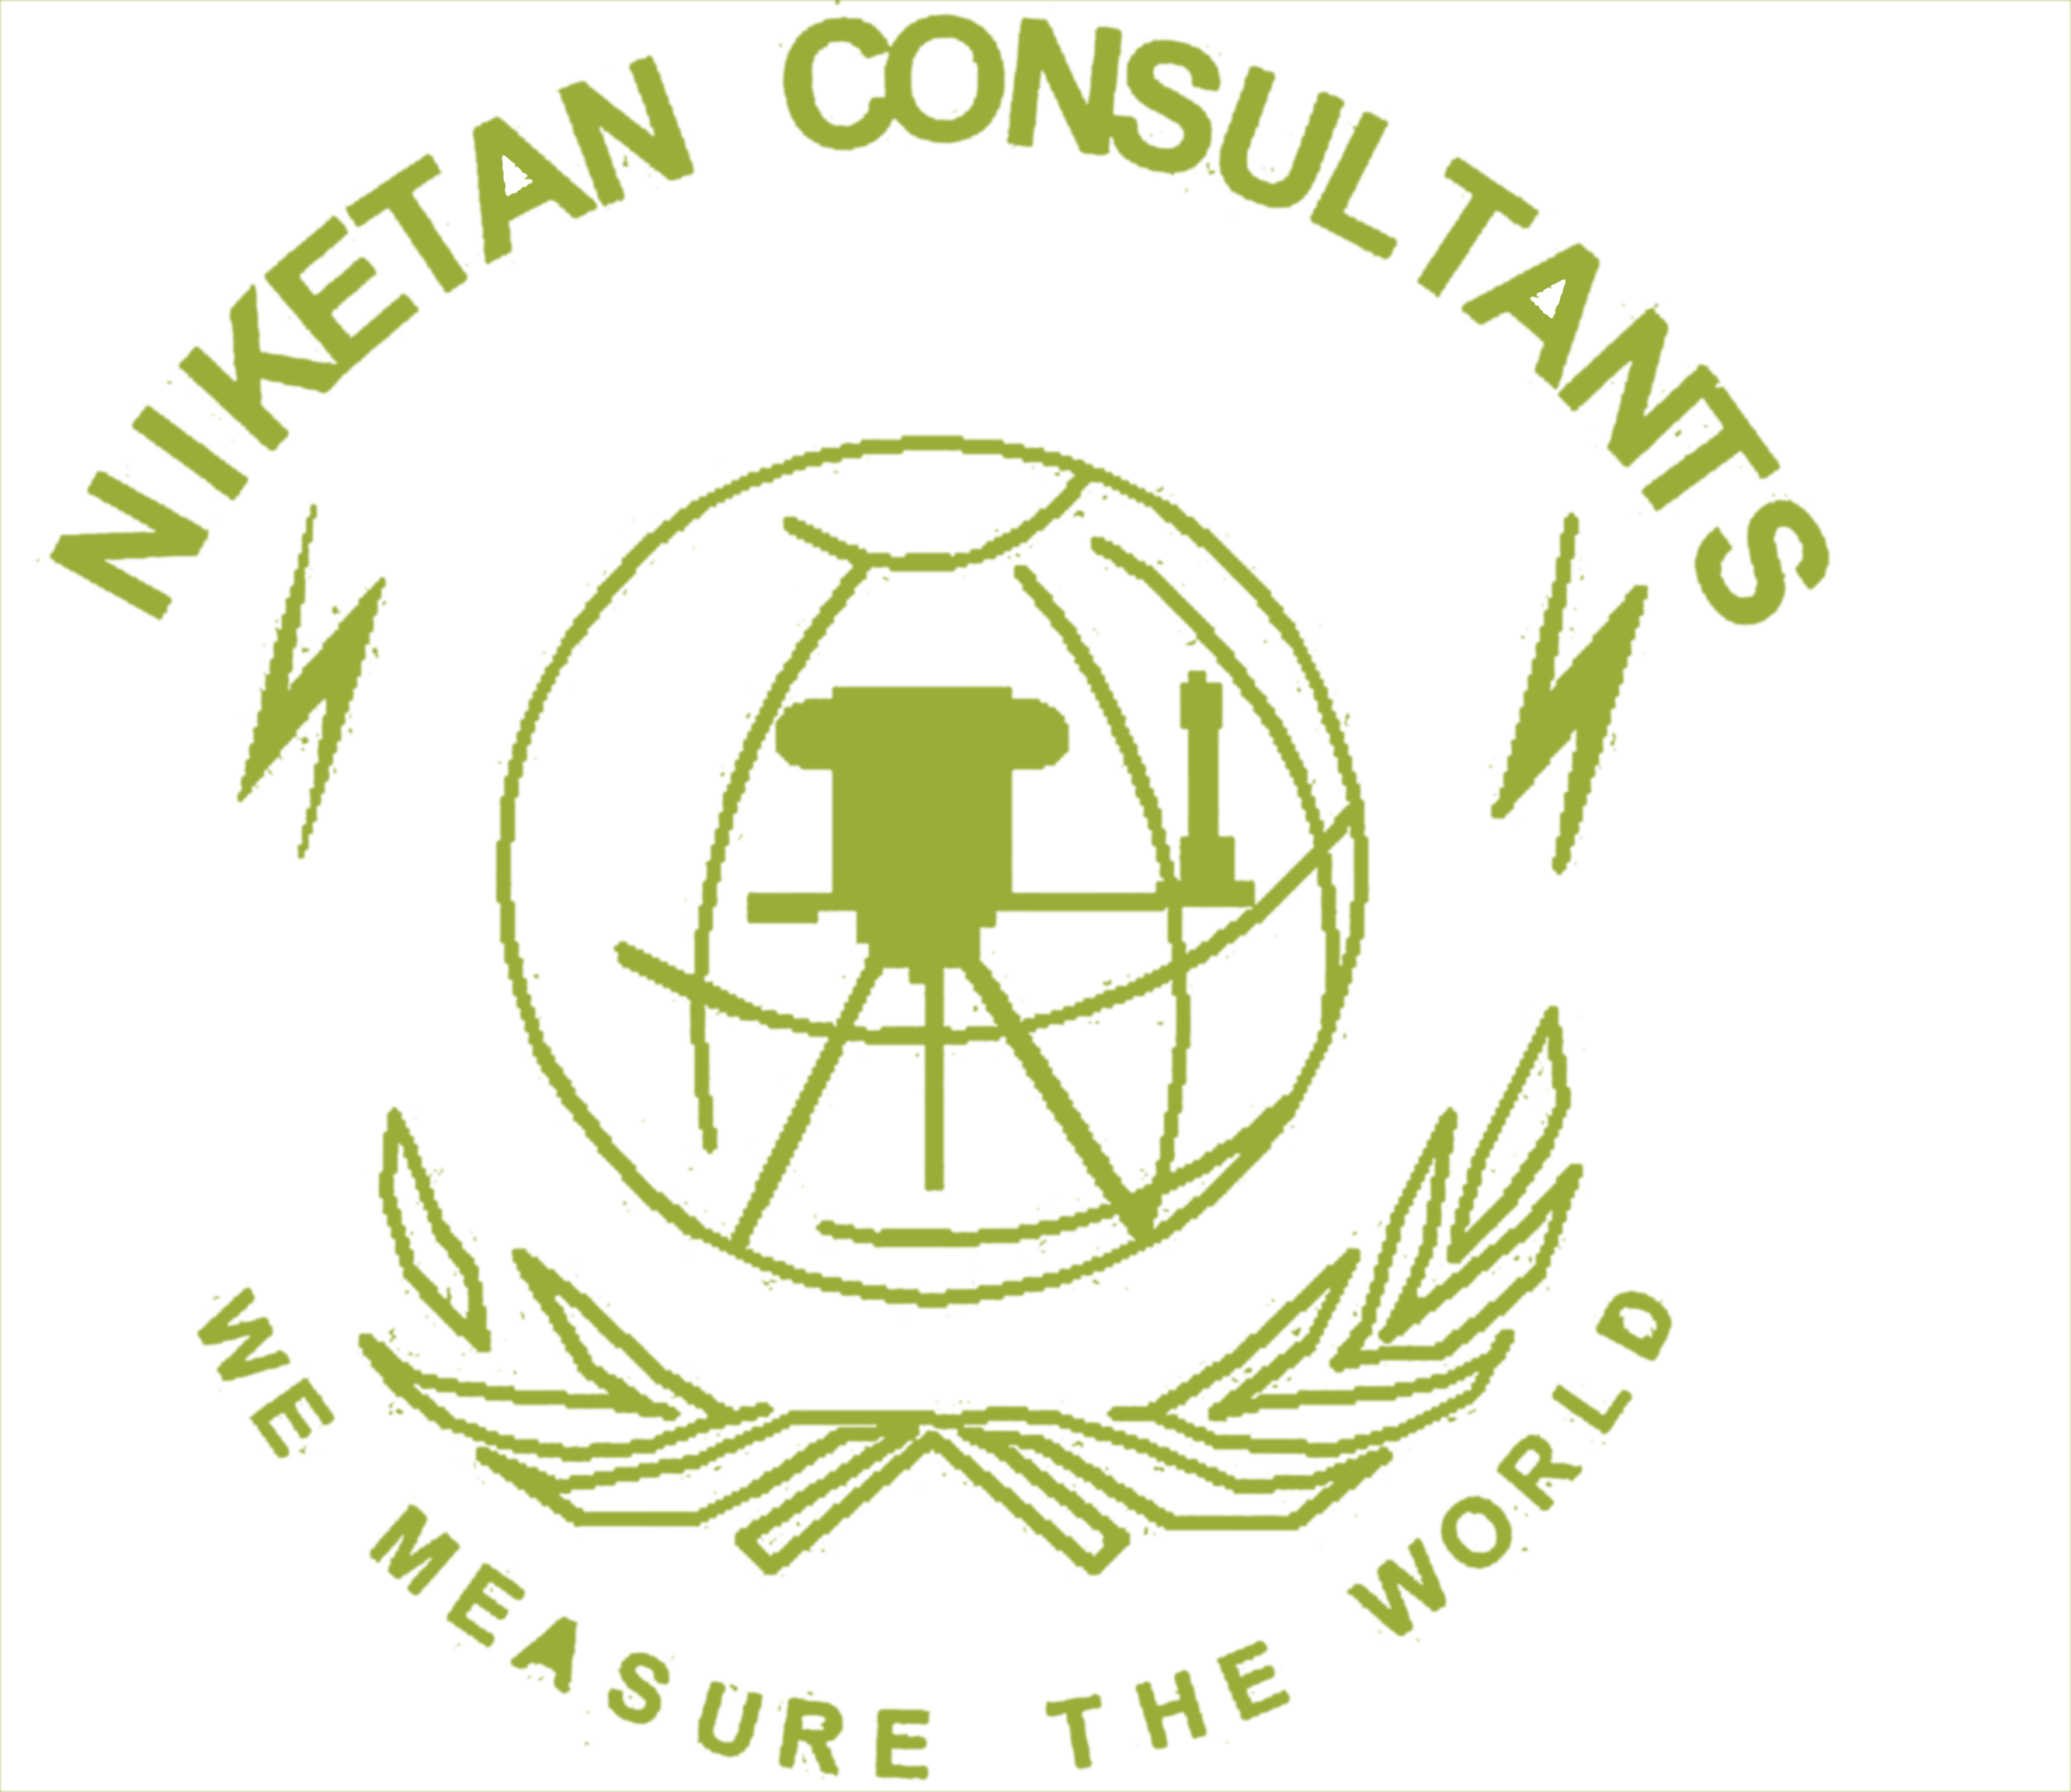 Nikethan Consultants